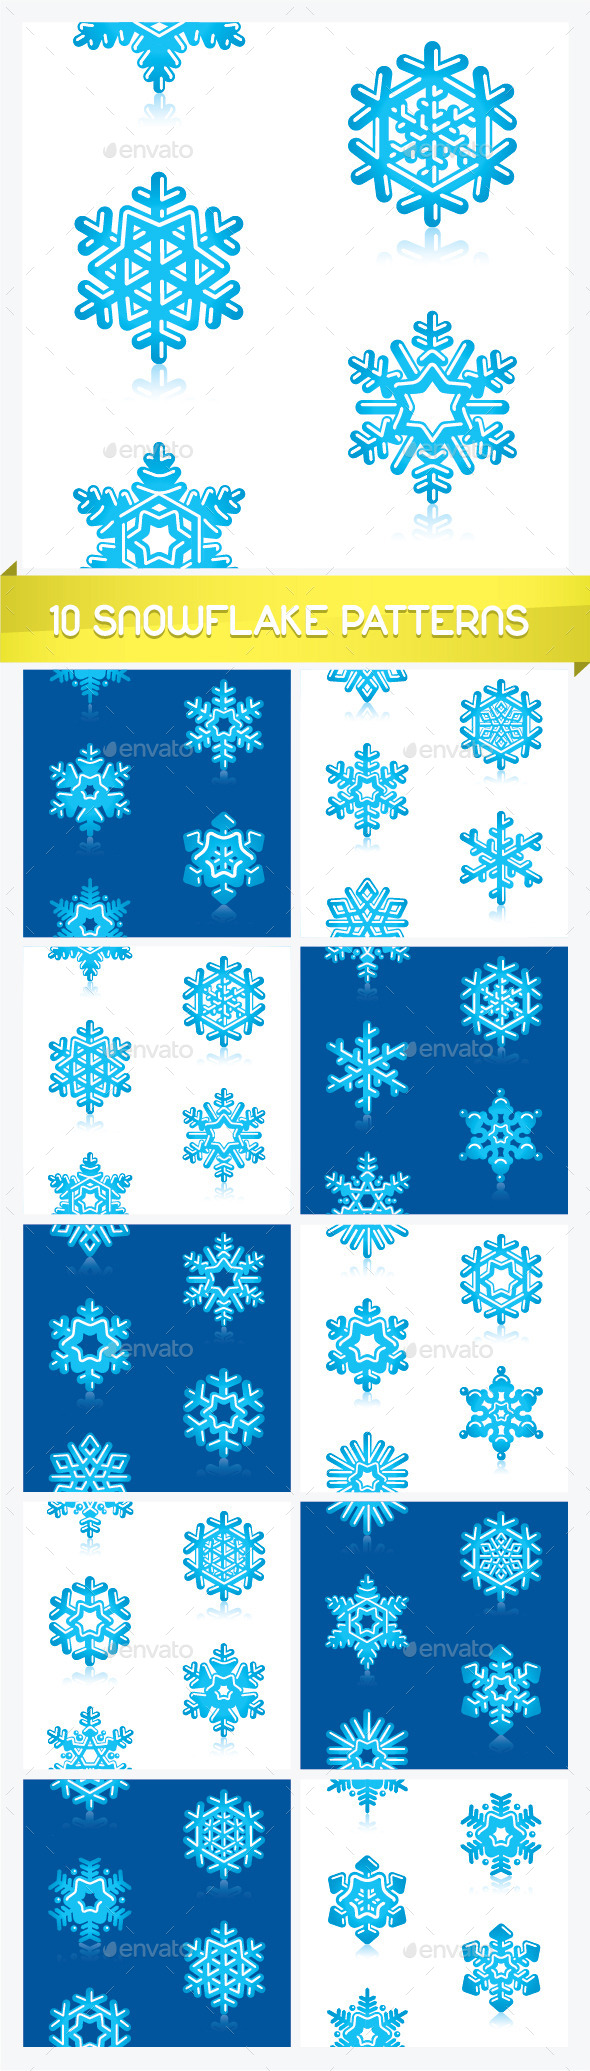 GraphicRiver Ten Snowflake Patterns 11877652